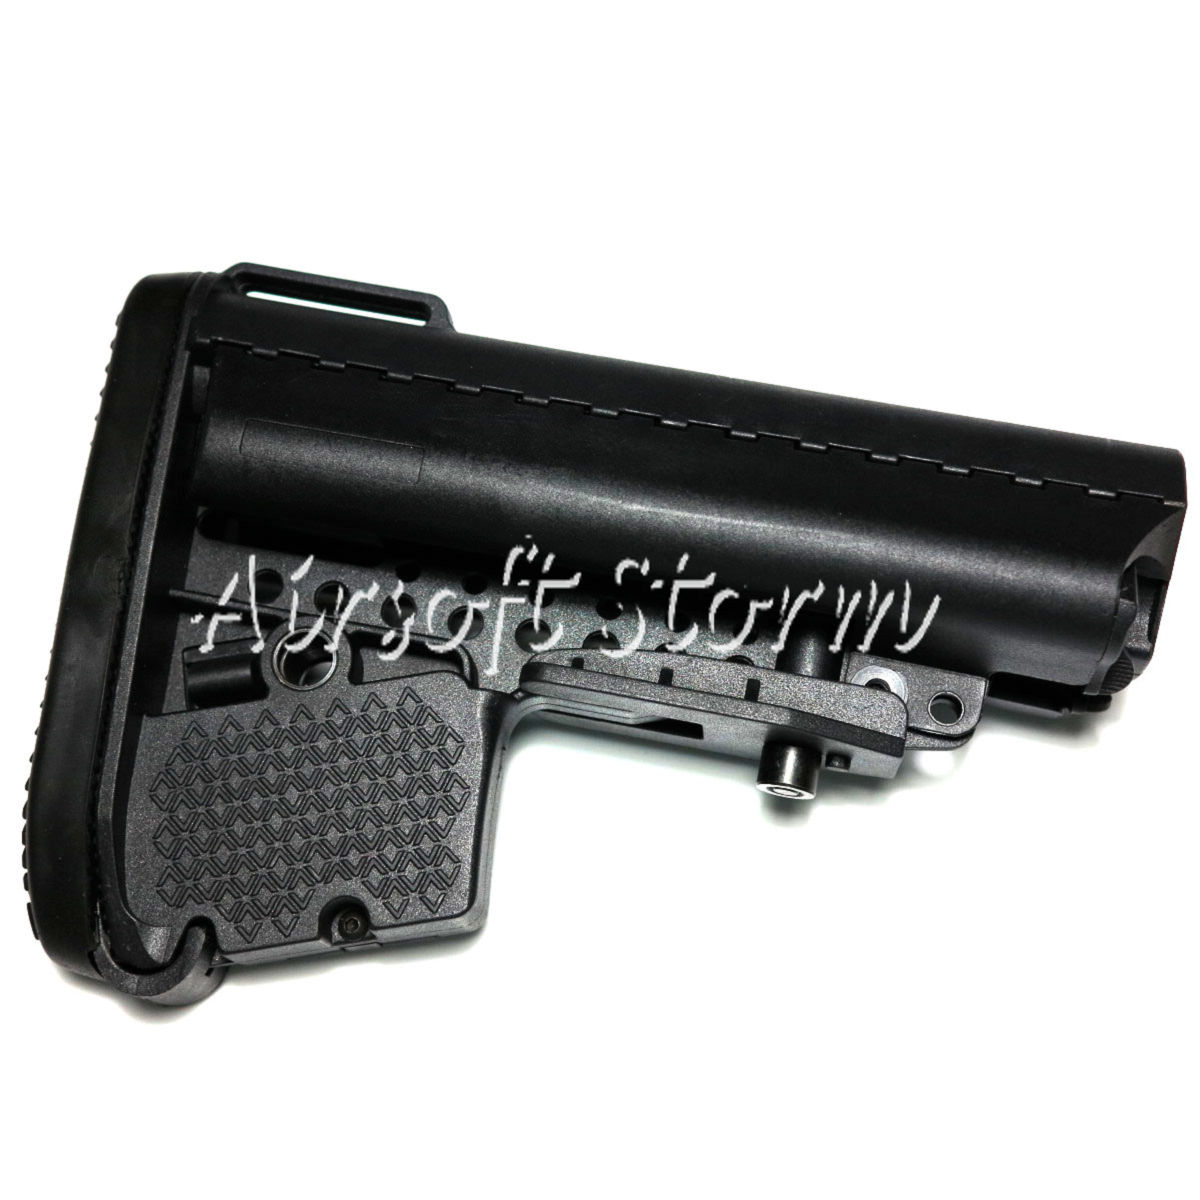 Airsoft Tactical Gear D-Boys VLTOR Style MOD Crane Stock with Rear Storage Compartment for M14 M16 AEG